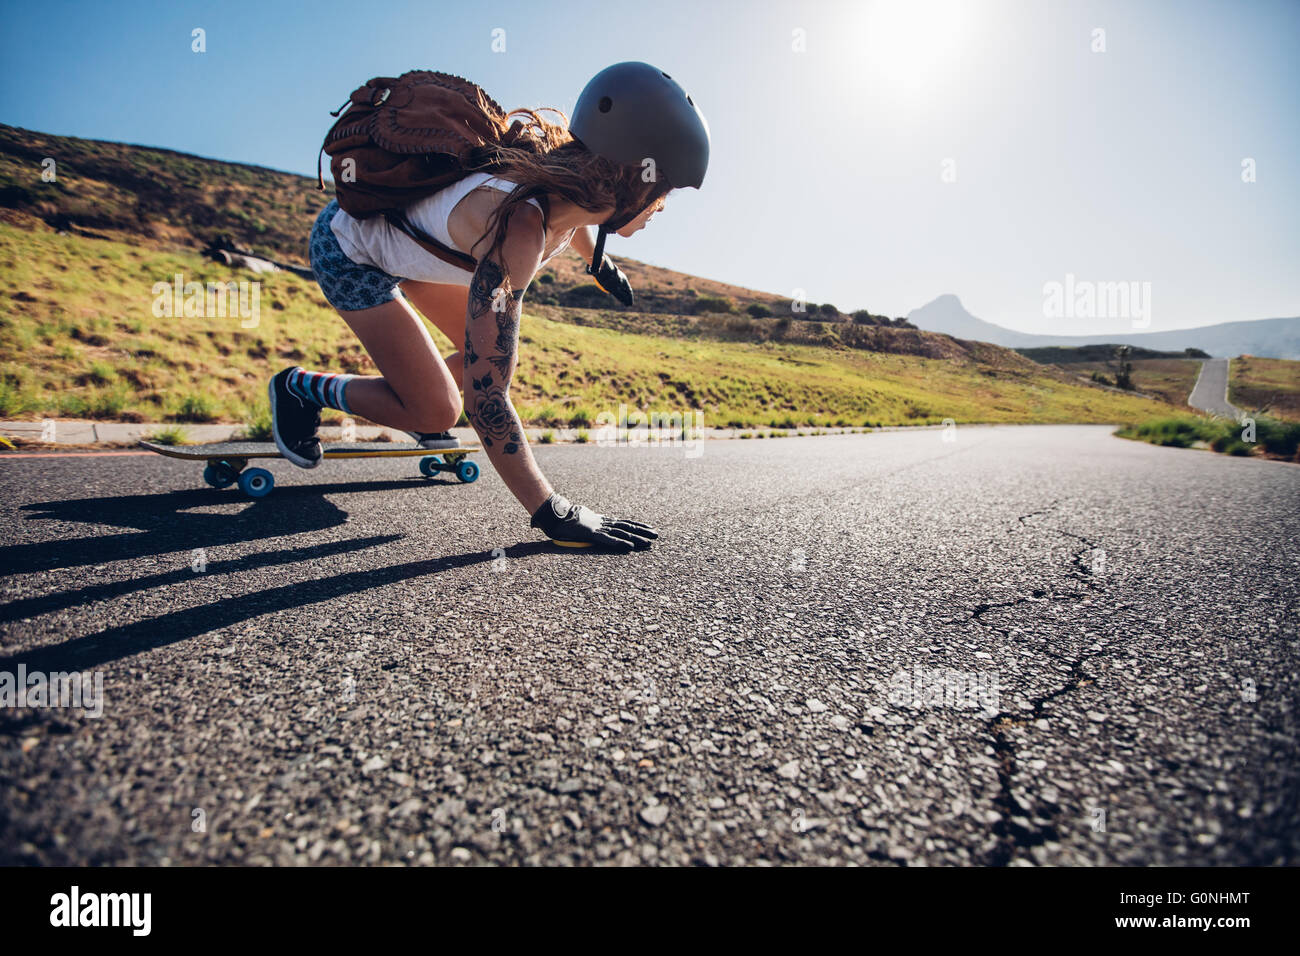 Young woman riding on her skateboard. Female skater practicing skating on country road. Stock Photo